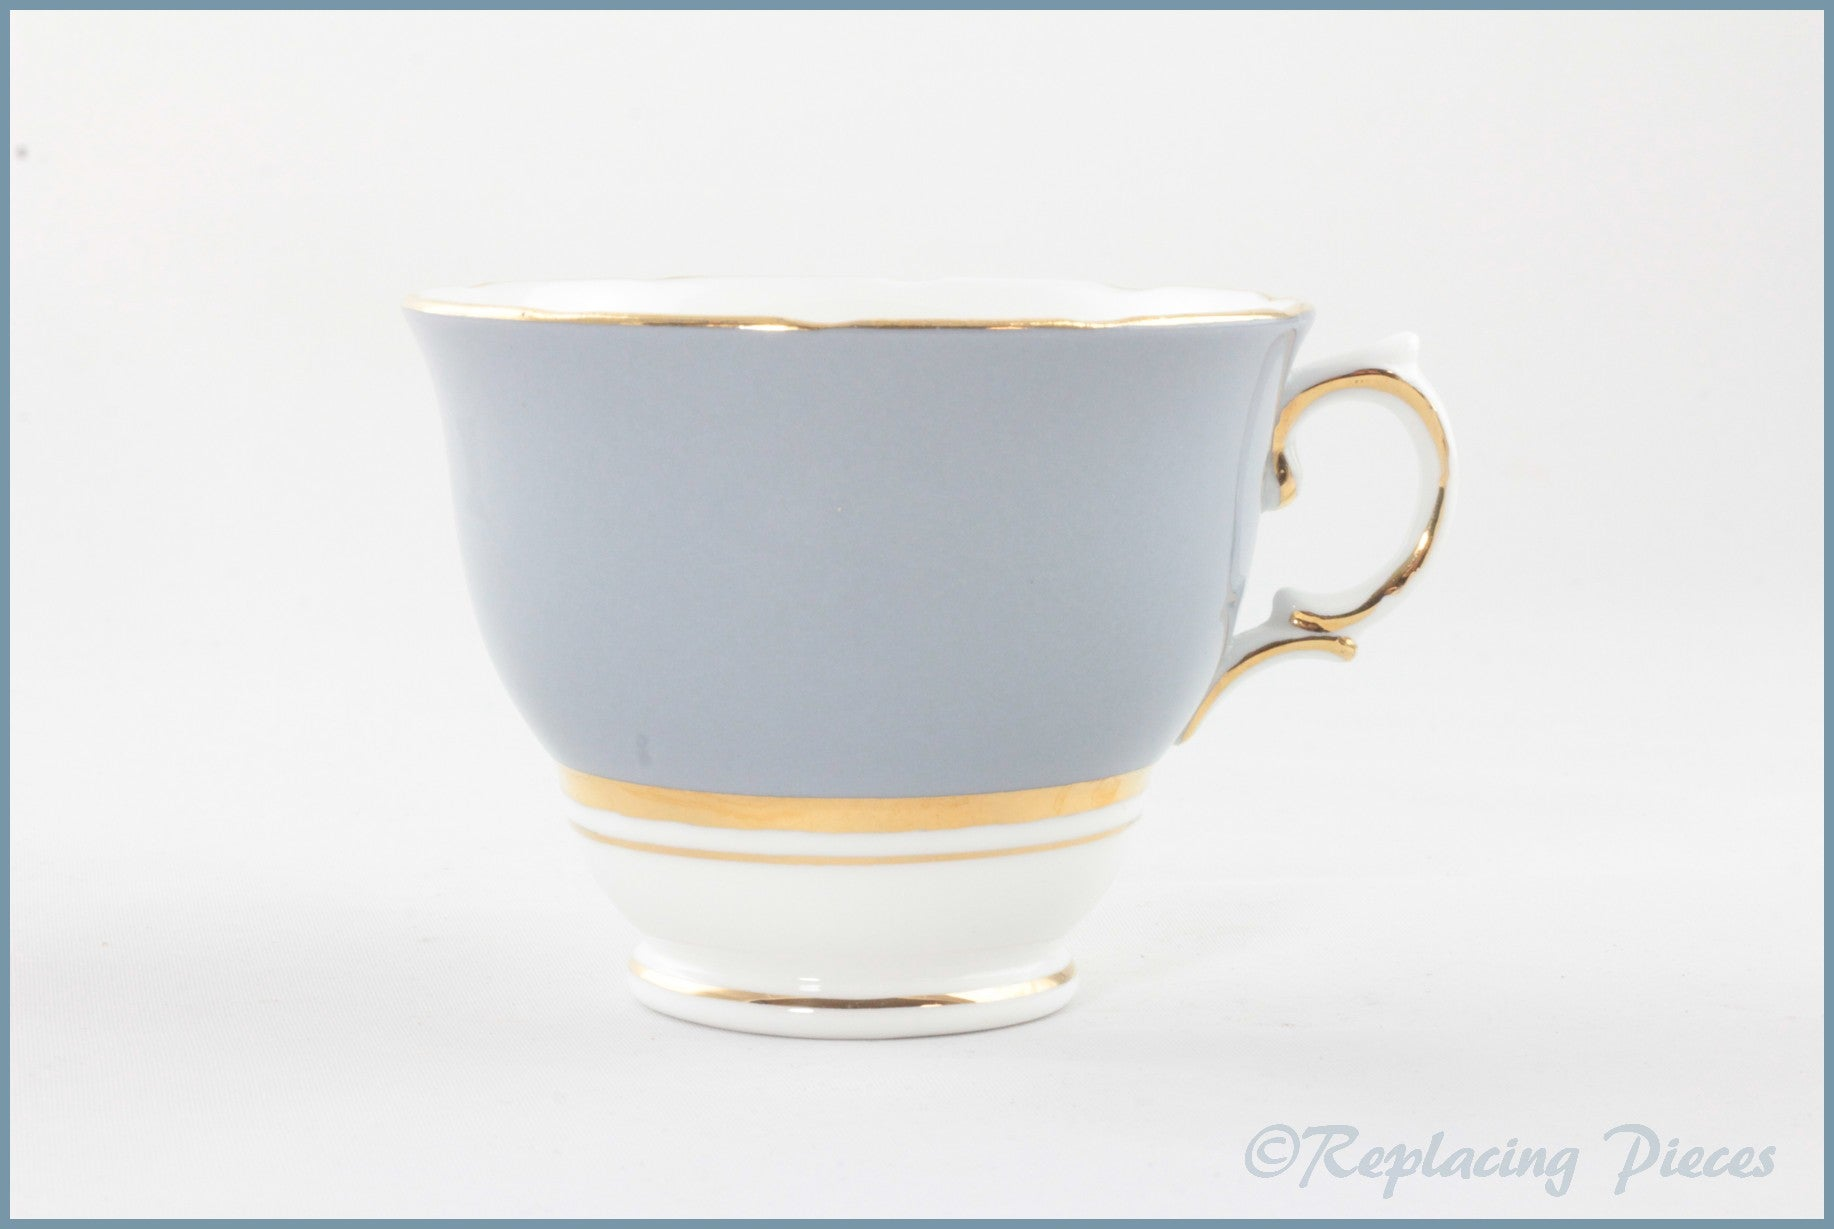 Colclough - Harlequin Ballet (Grey) - Teacup